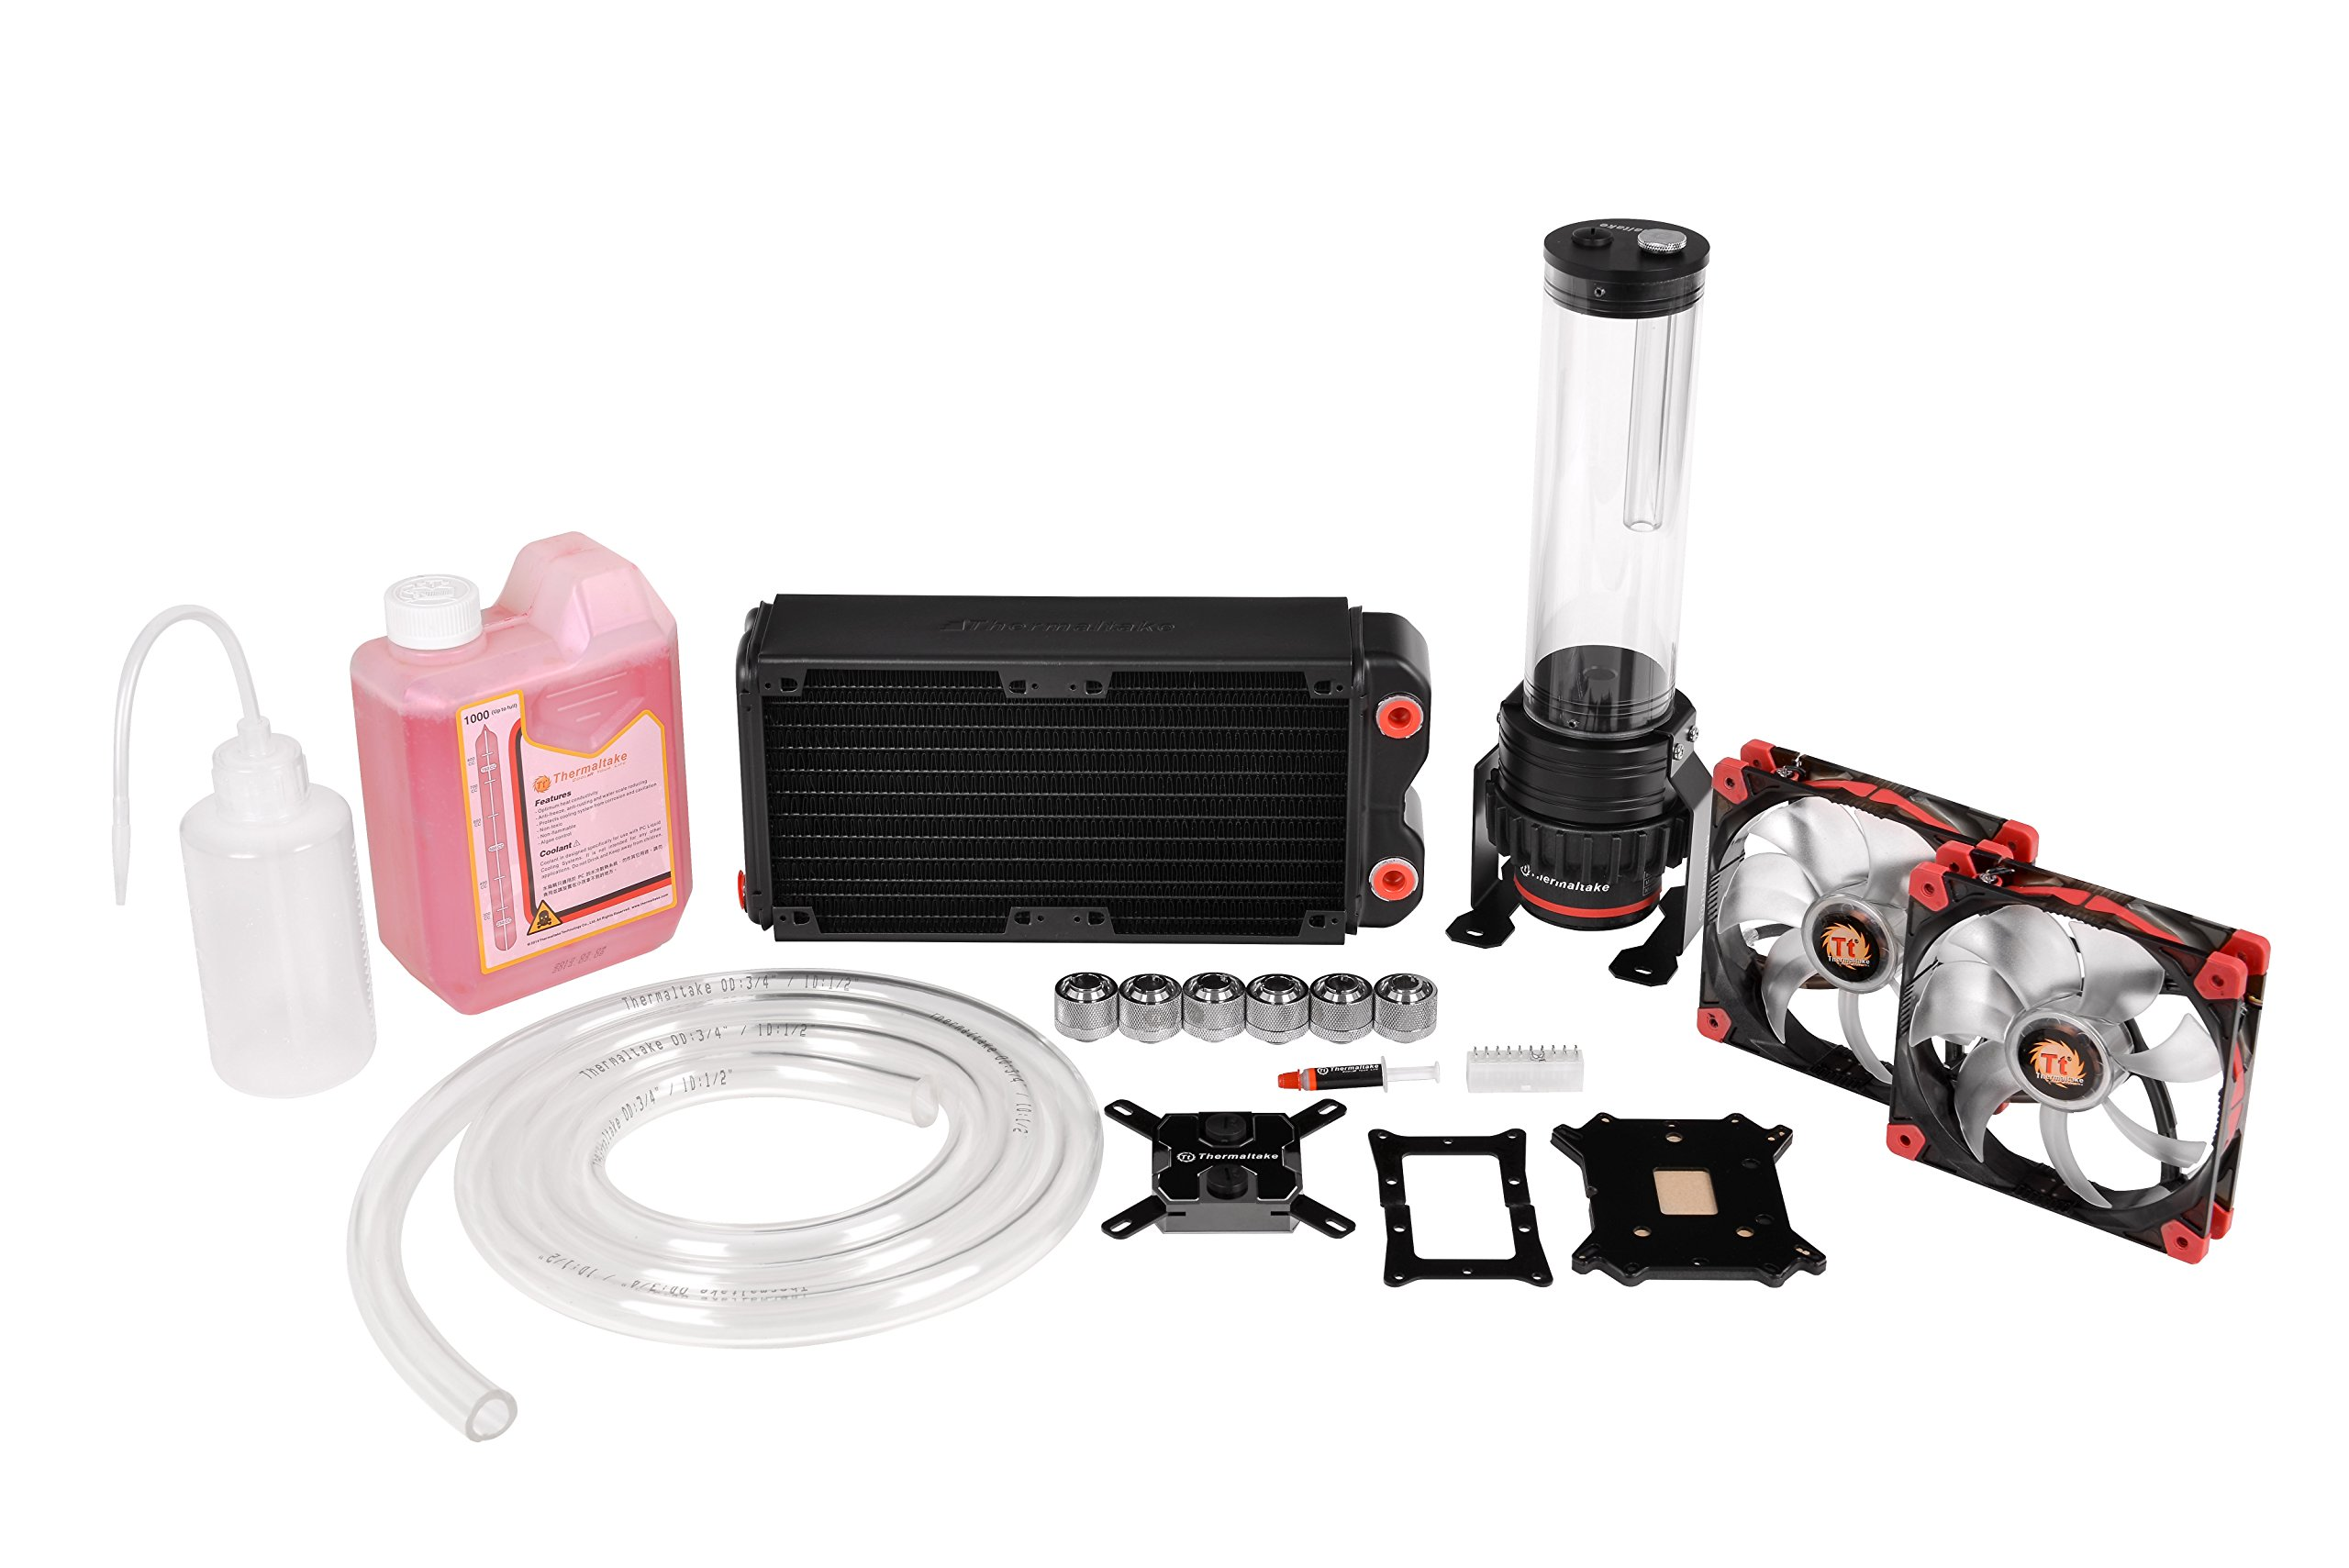 Thermaltake Pacific DIY LCS RL240 D5 Red/Pump Red Luna Fan Water Cooling Kit CL-W063-CA00BL-A by Thermaltake